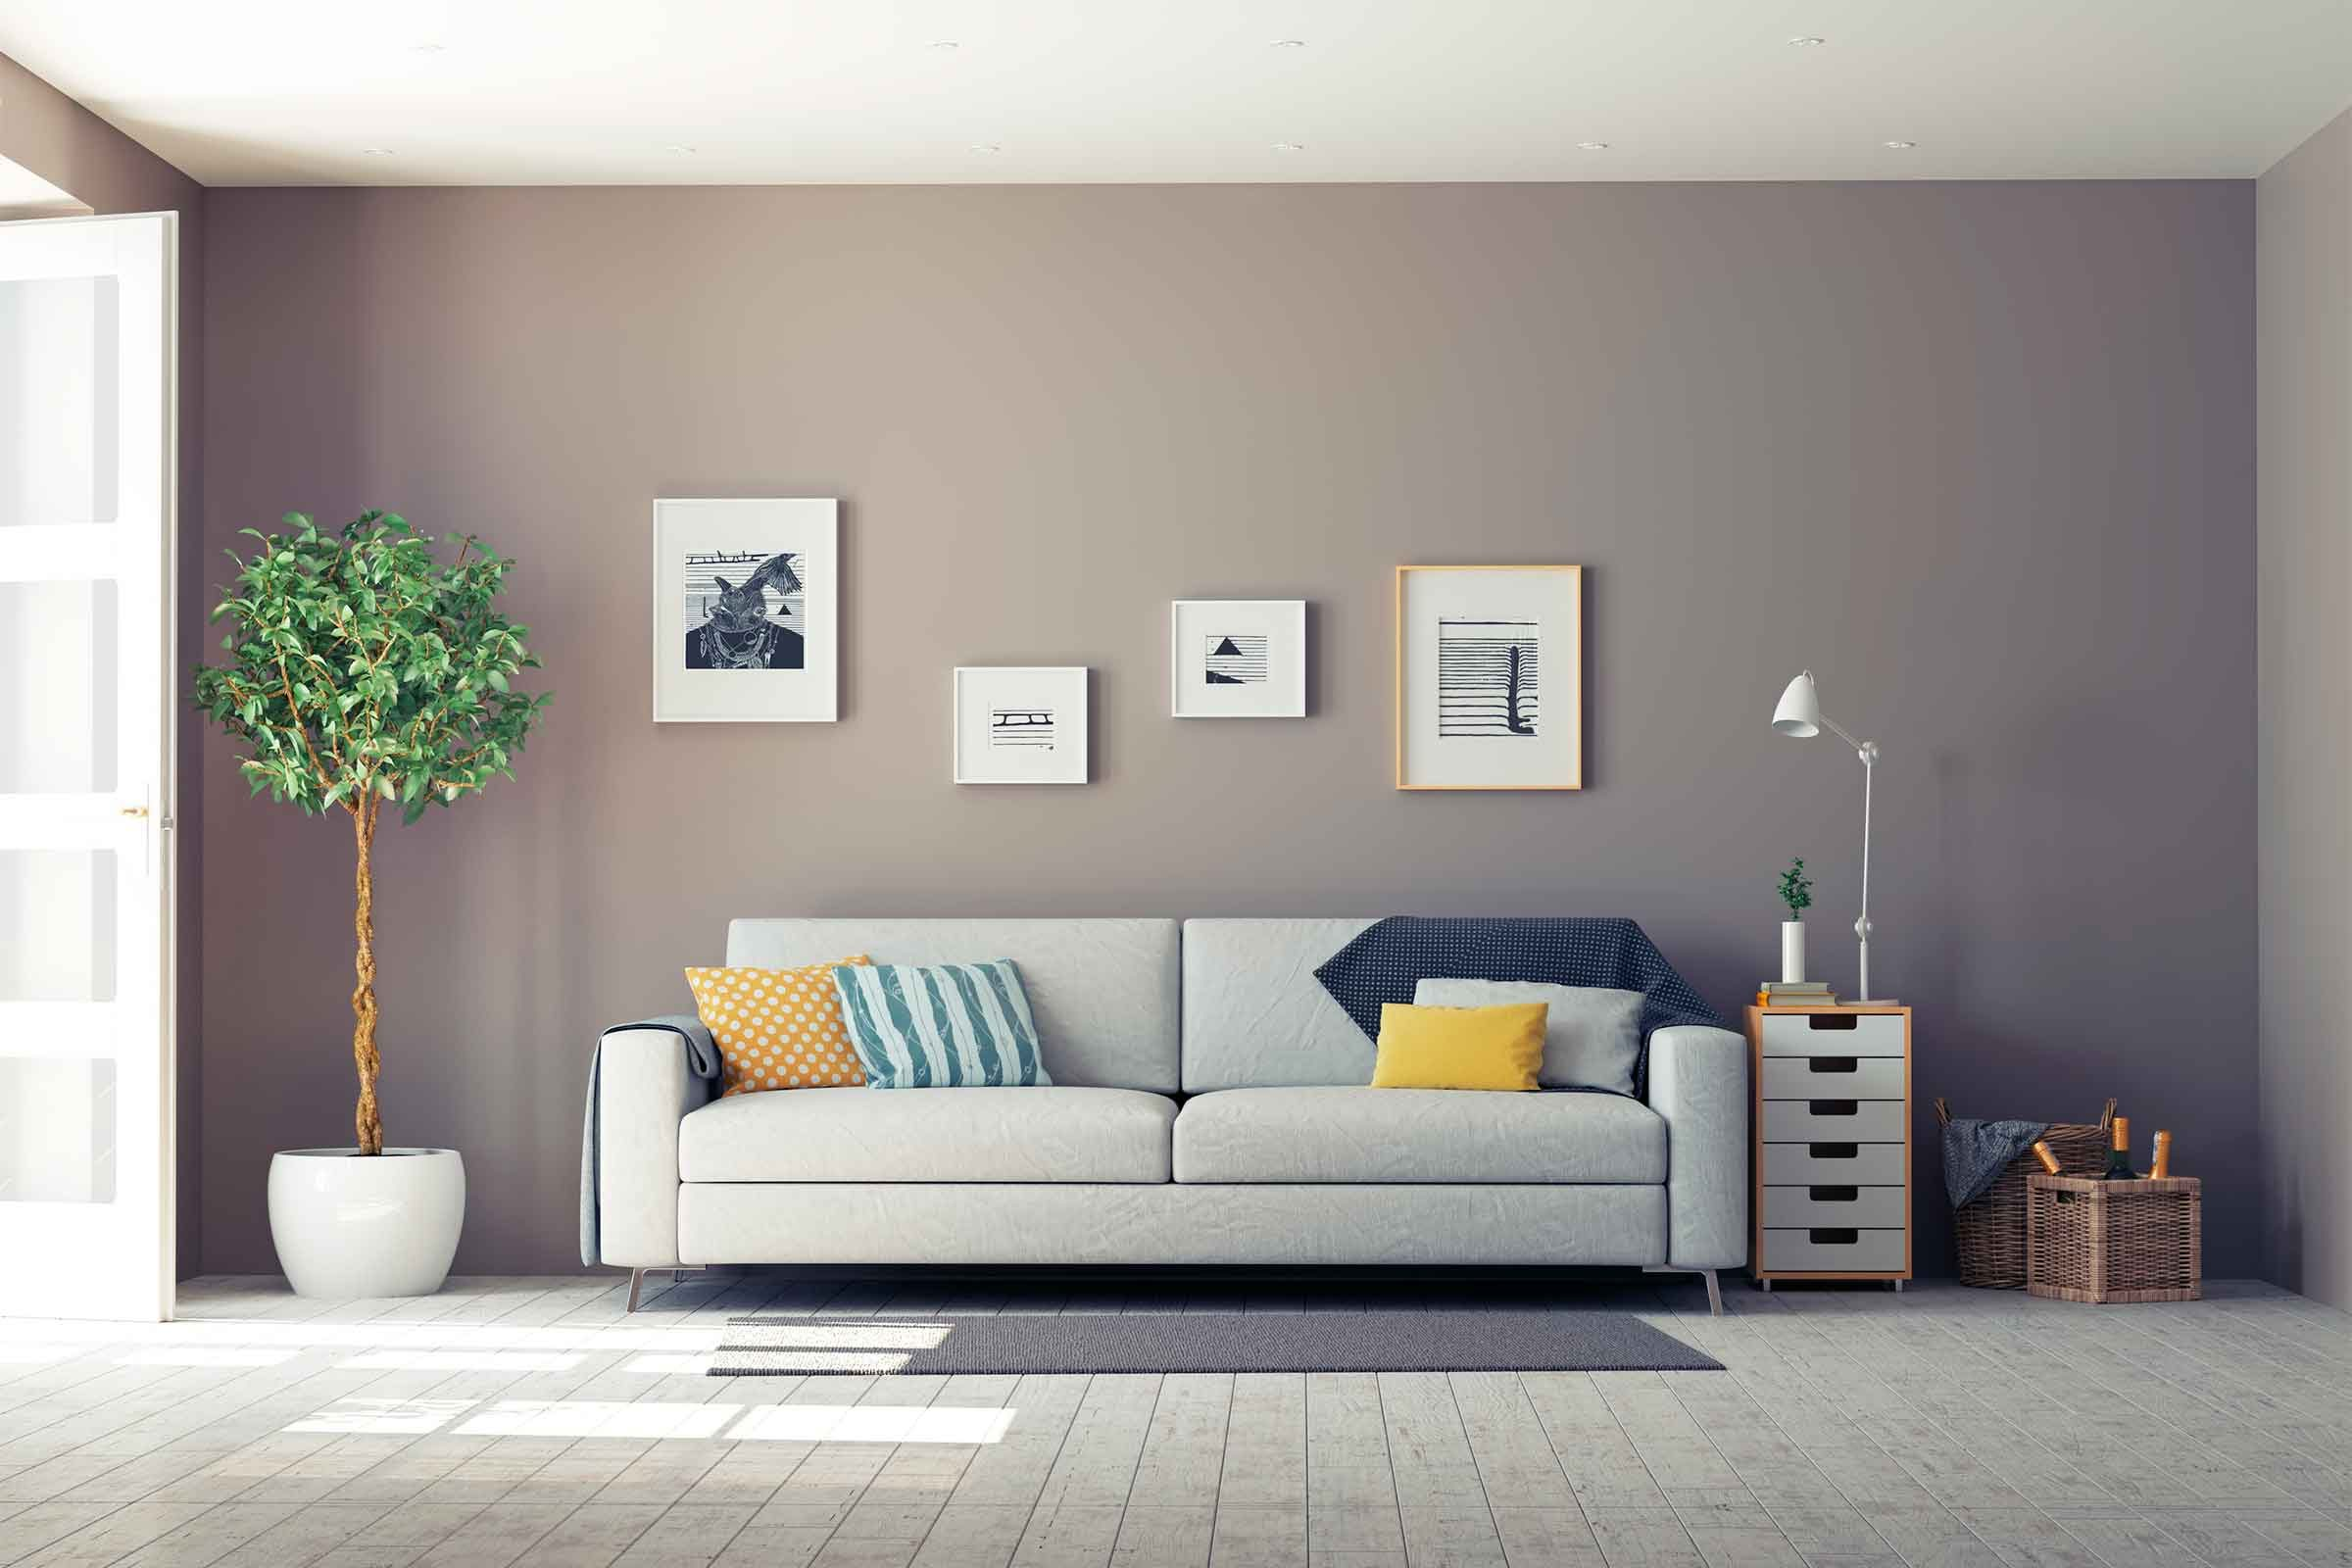 12 Decorating Tips That Help You Sell Your Home Fast